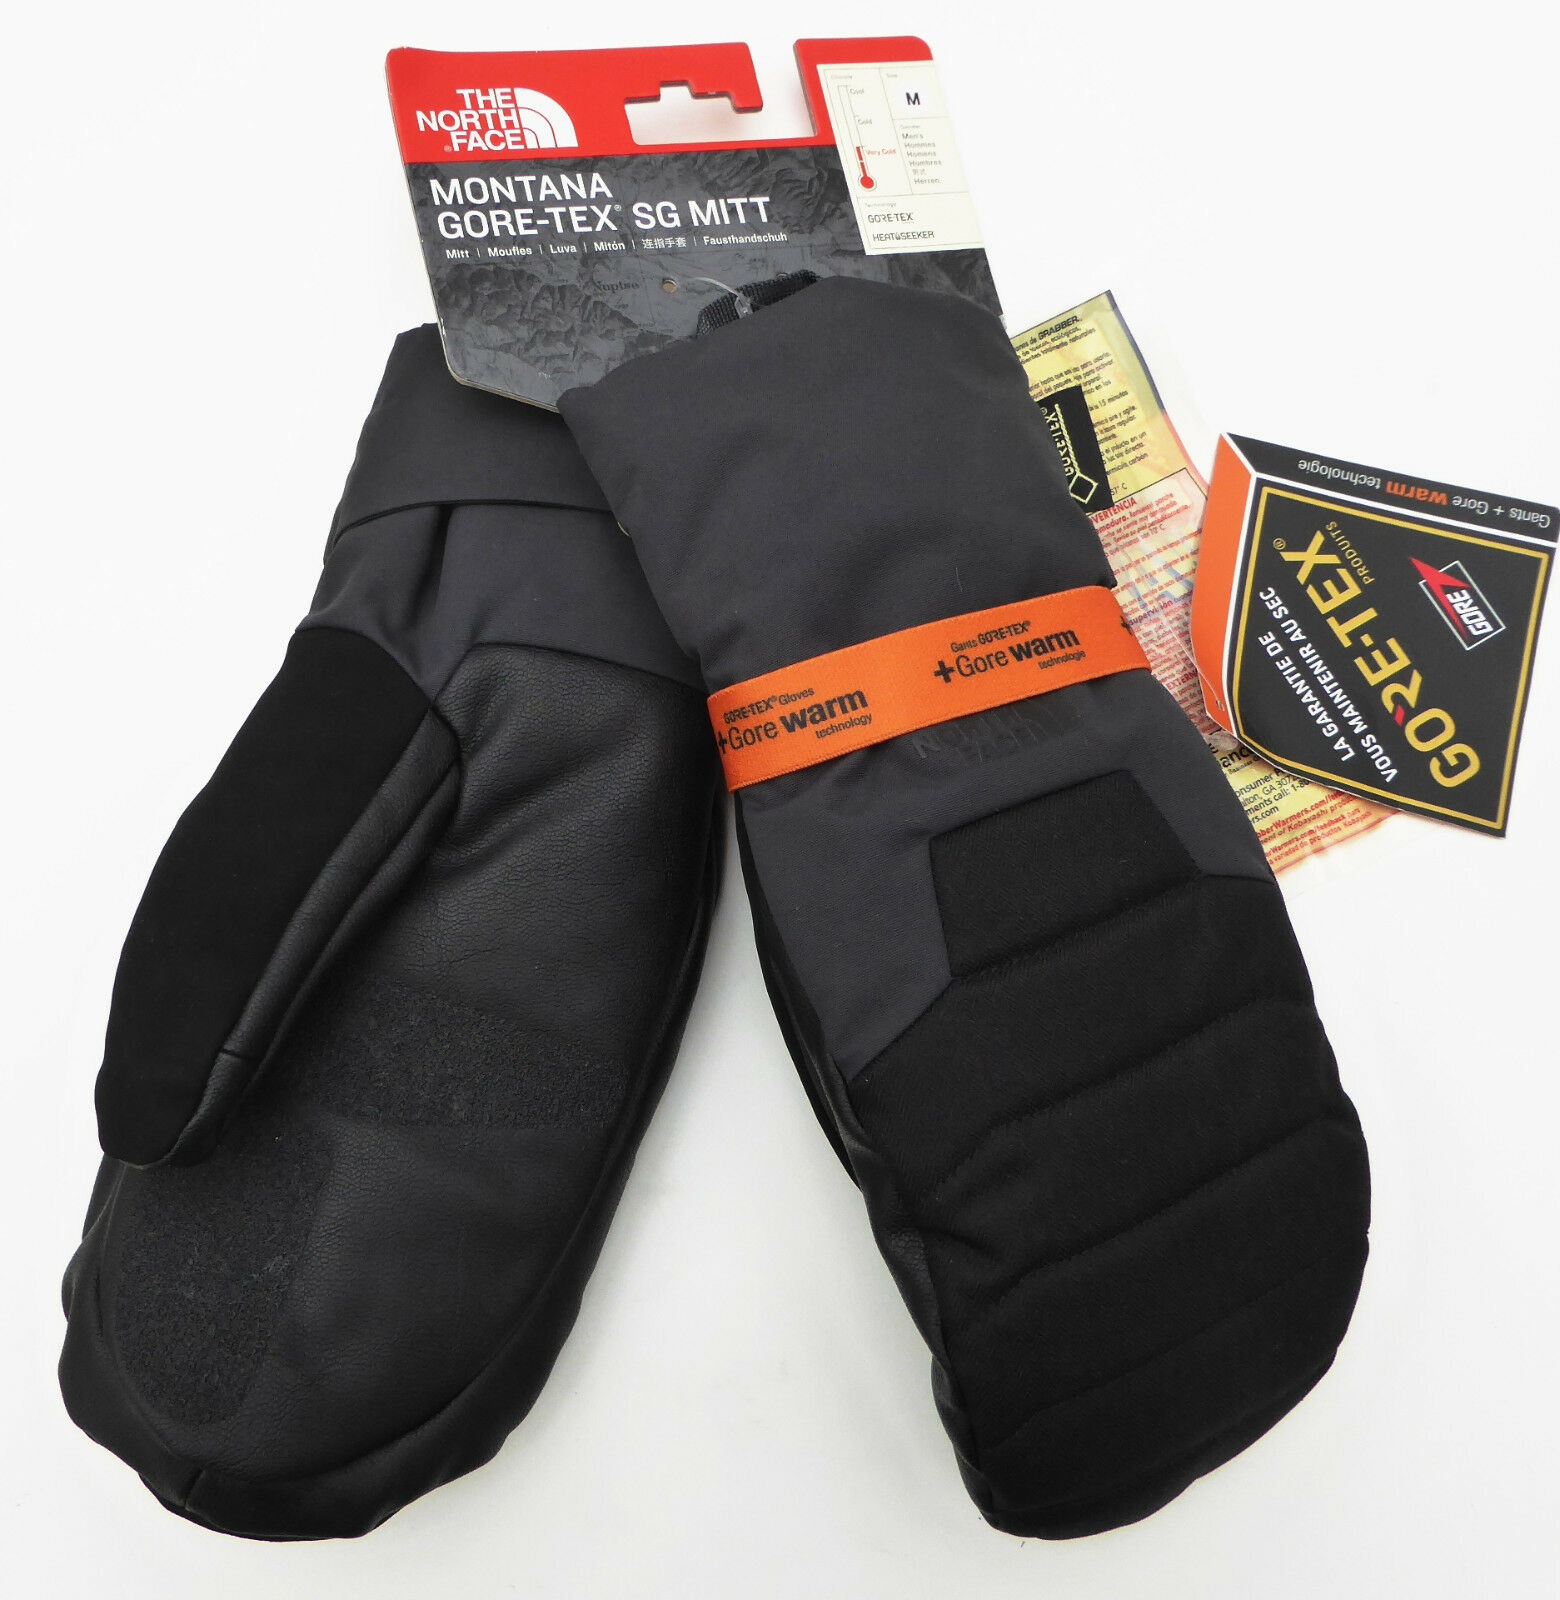 The North Face Mens MONTANA SG GORE-TEX MITTS Warm Insulated Mitt Asphalt Grey M